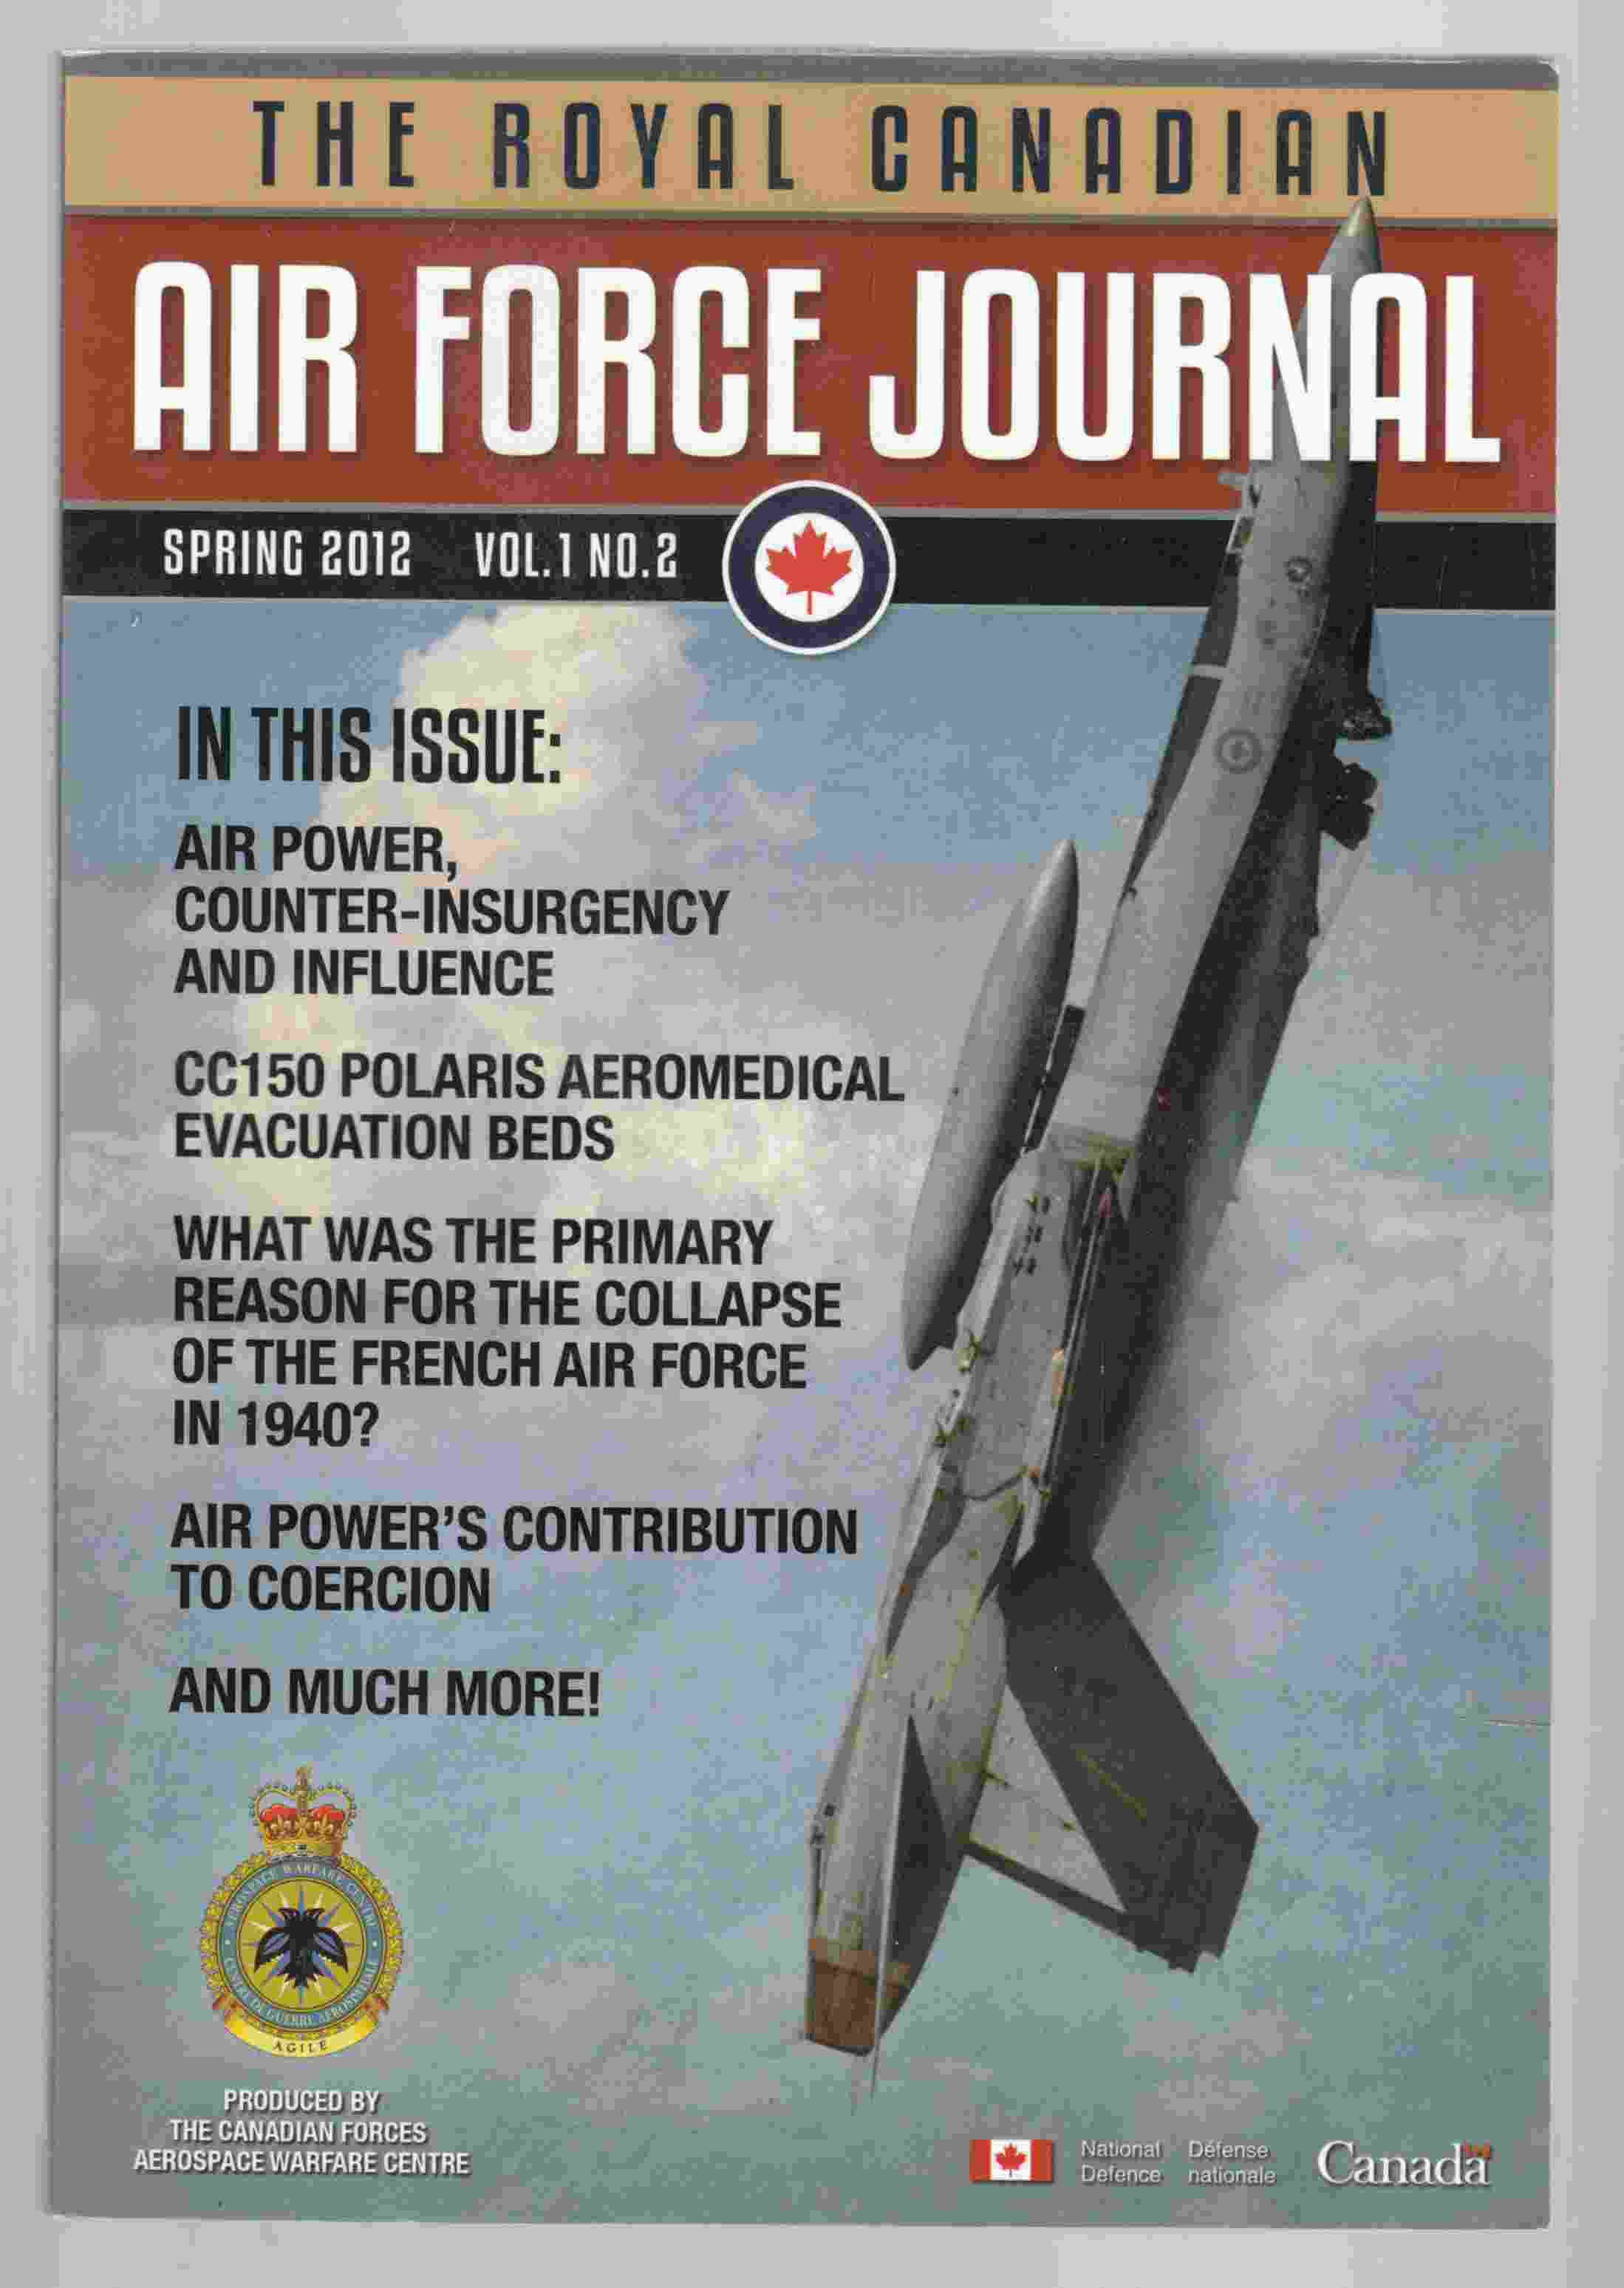 Image for The Royal Canadian Air Force Journal Spring 2012 Vol 1. No. 2 / La Revue De L'Aviation Royale Canadienne Printemps 2012 Vol 1. No. 2